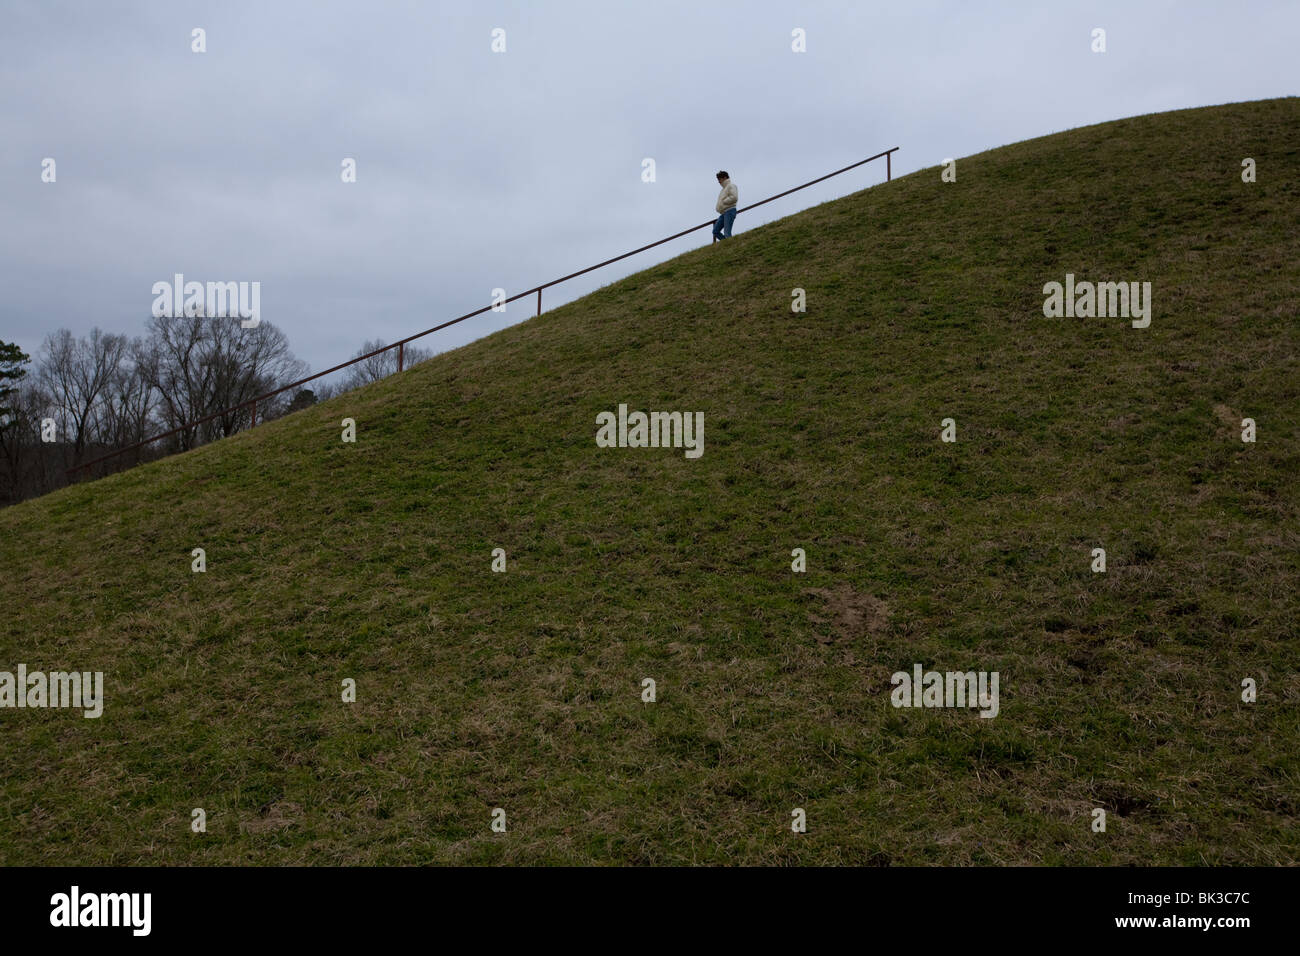 Emerald Mound, Indian burial site on Natchez Trace Parkway in Mississippi, 2nd largest burial mound in USA - Stock Image